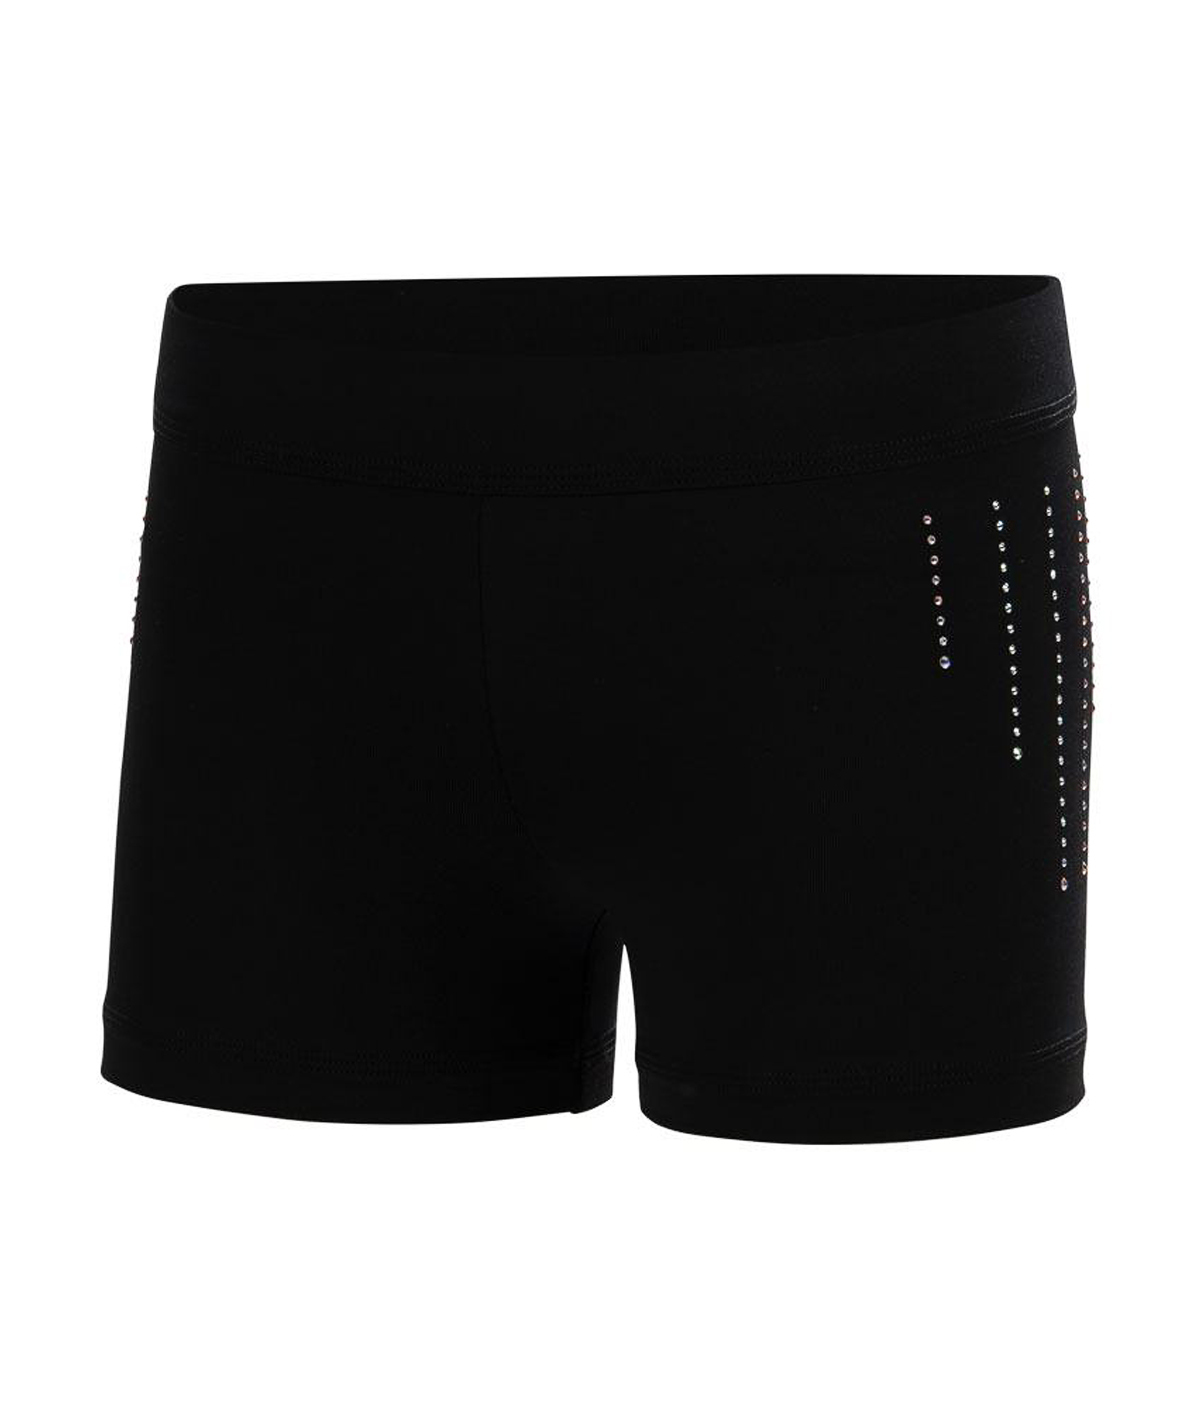 GK All Star Jewel Striped DryTech Shorts